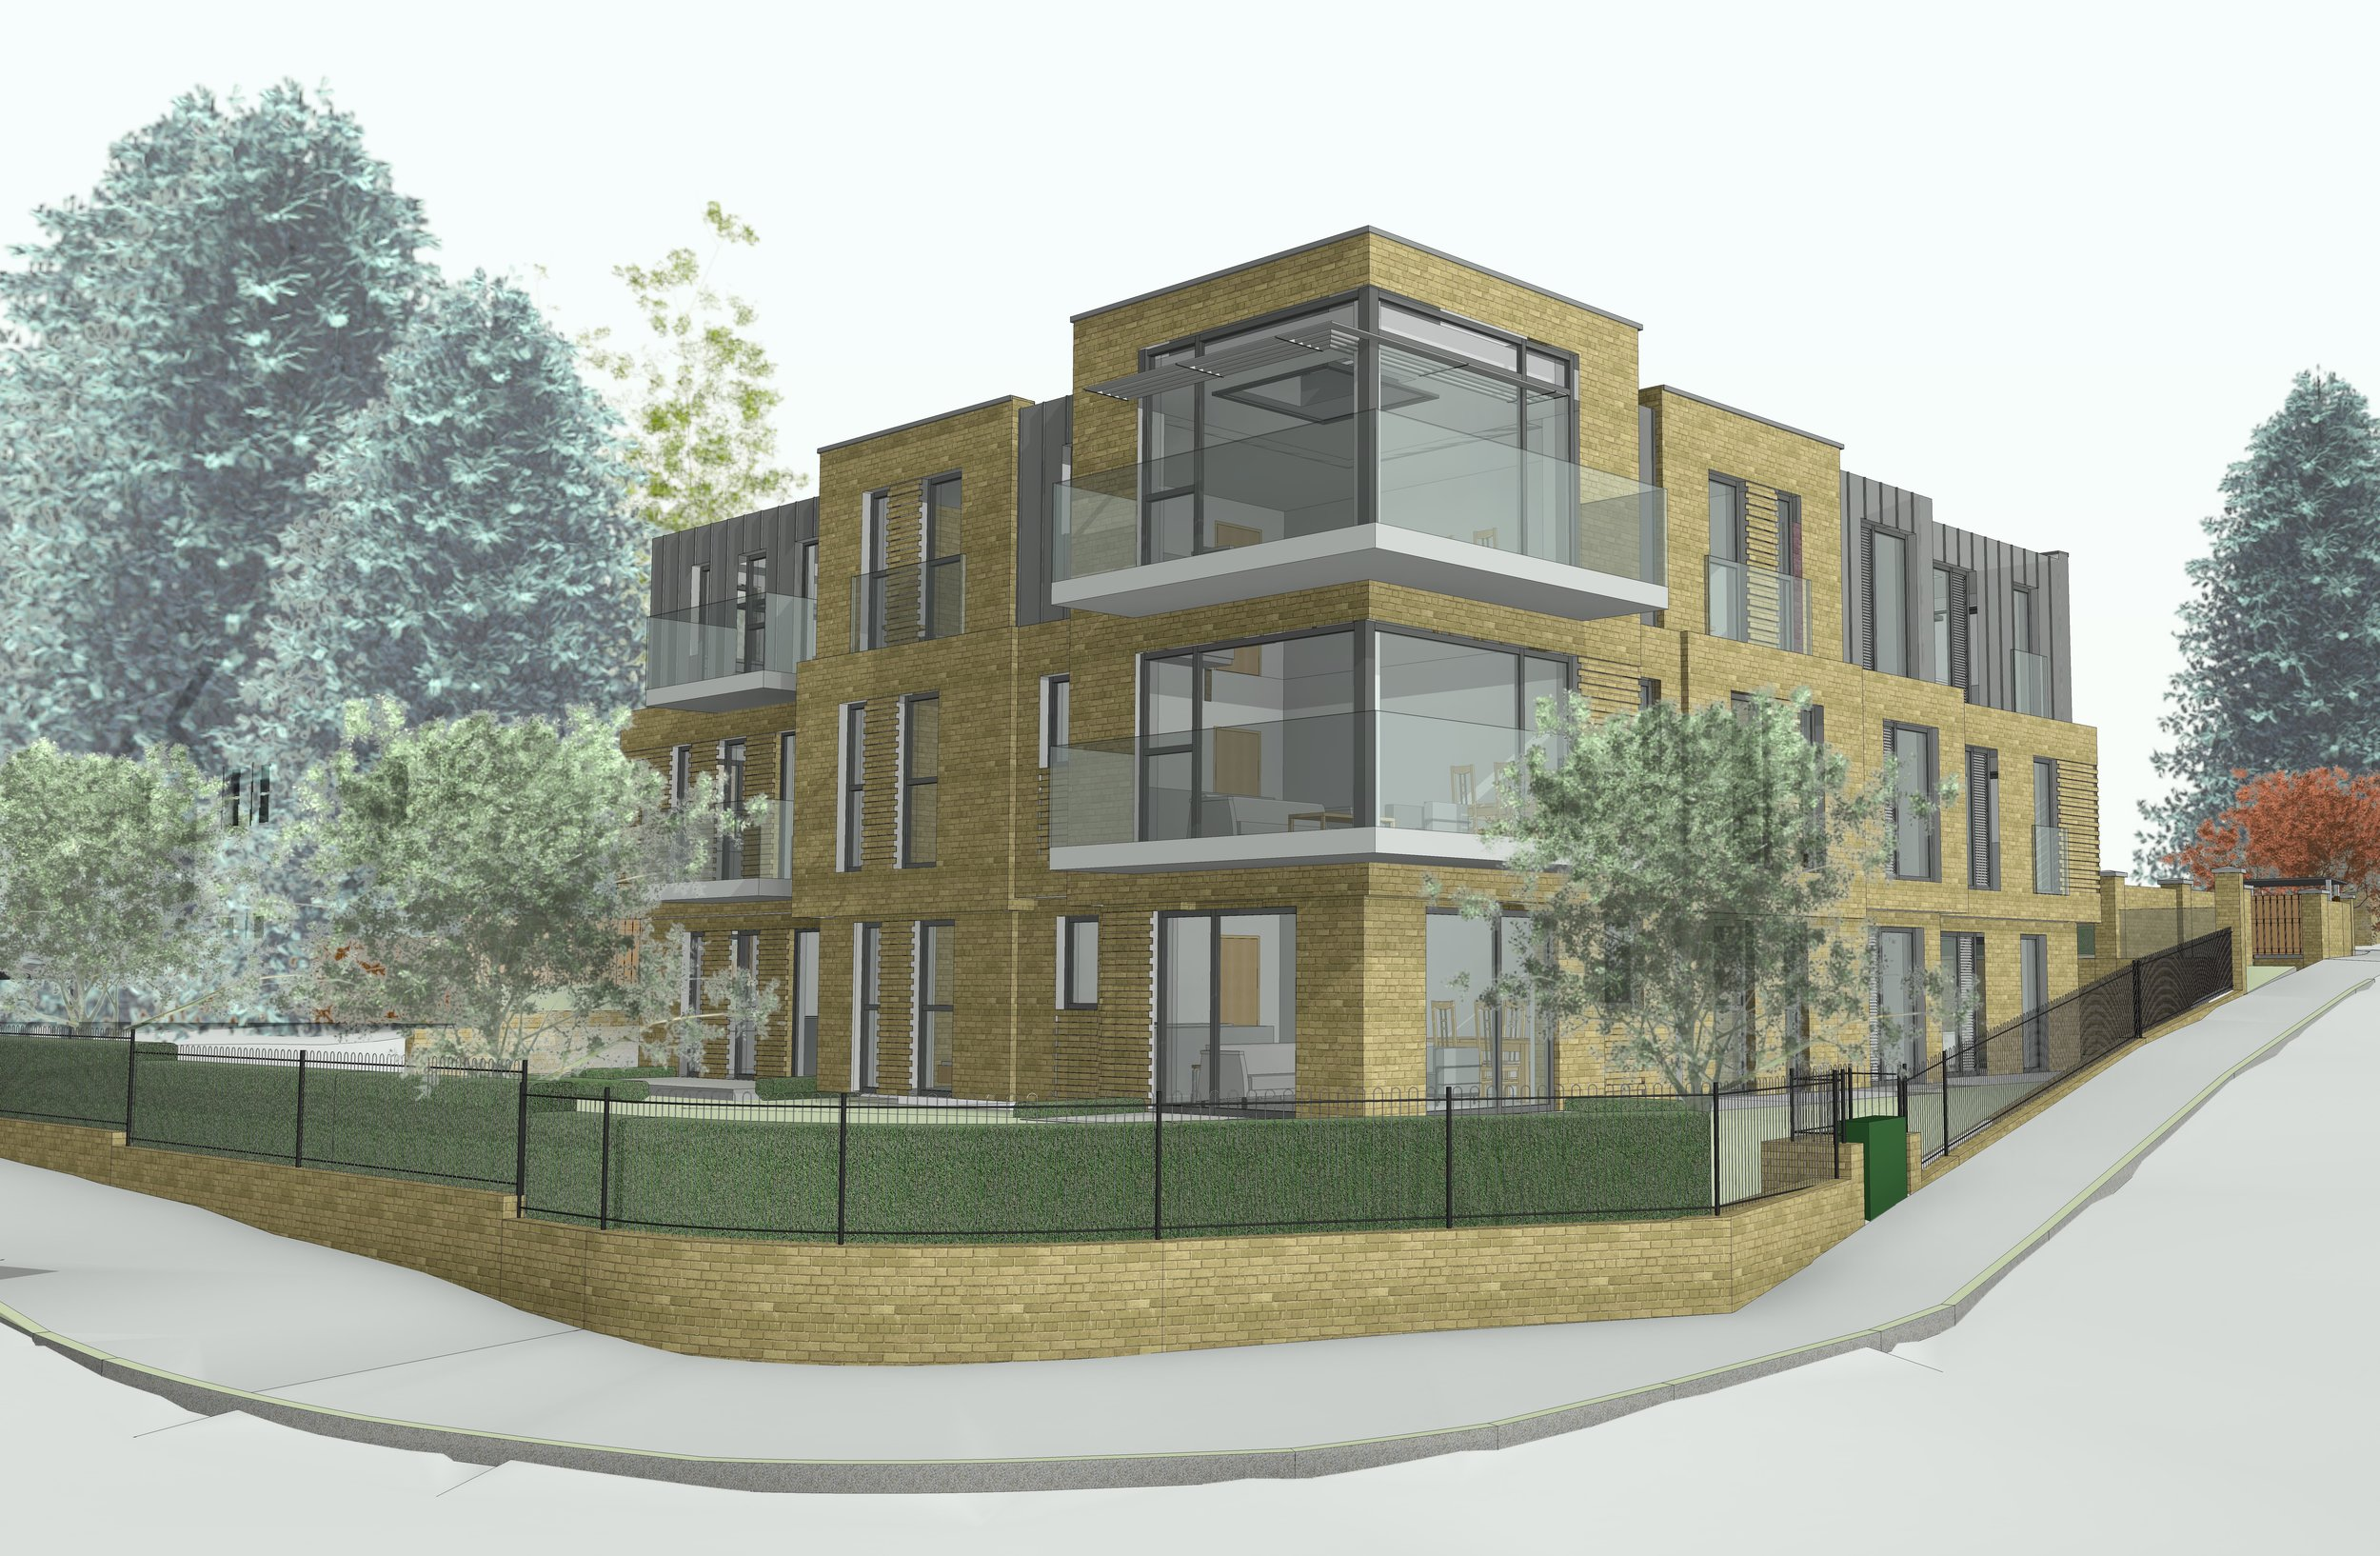 Sparks Garage, Camberly - Sparks Garage located in Camberly was used as an existing motor garage. The client appointed us to achieve planning permission and working drawings for a new build block of apartments with modern features and design. The total development consisted of 9 flats.